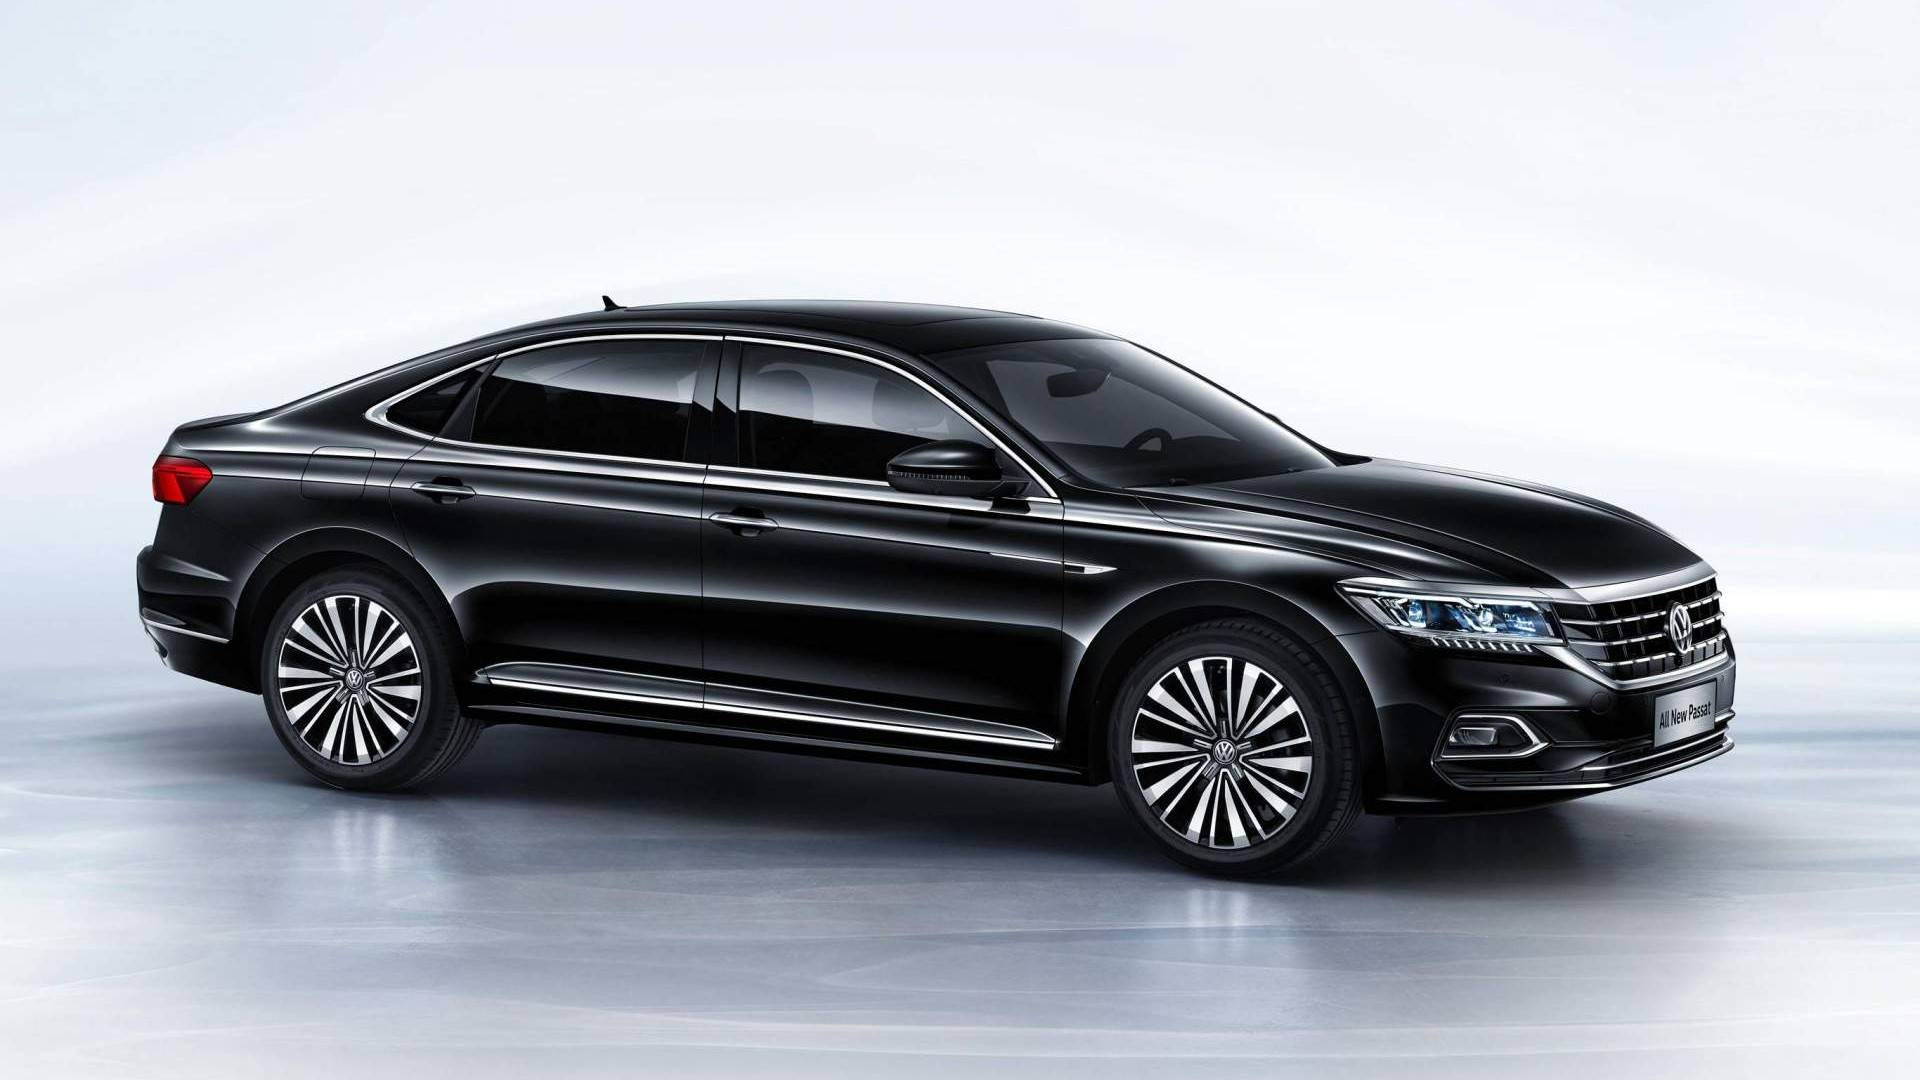 96 All New 2020 The Next Generation Vw Cc Images